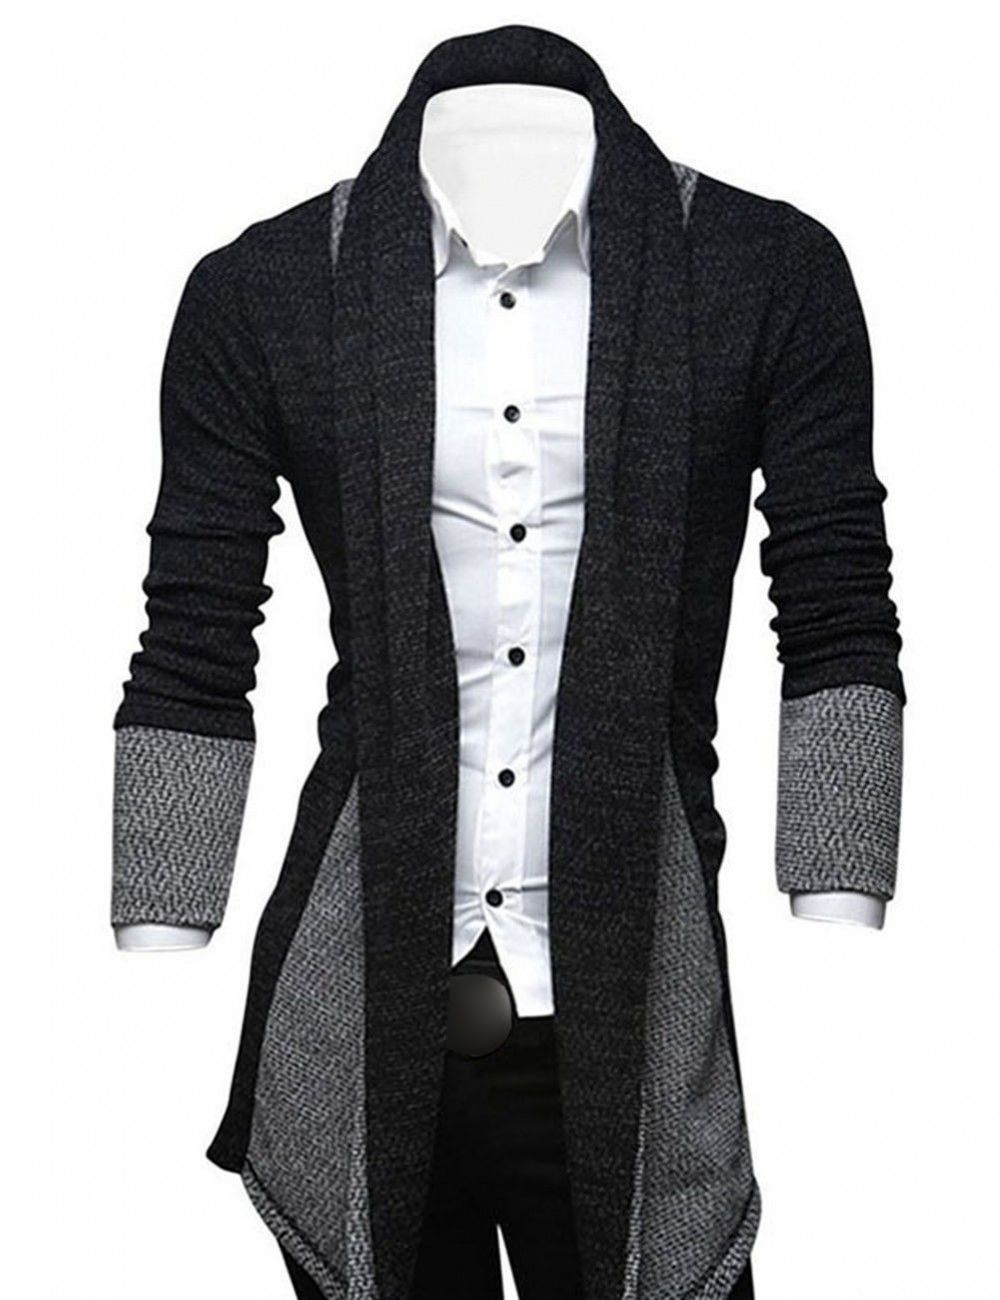 Men's Shawl Collar Open Front Classic Cardigan Fashion Knit Coat ...